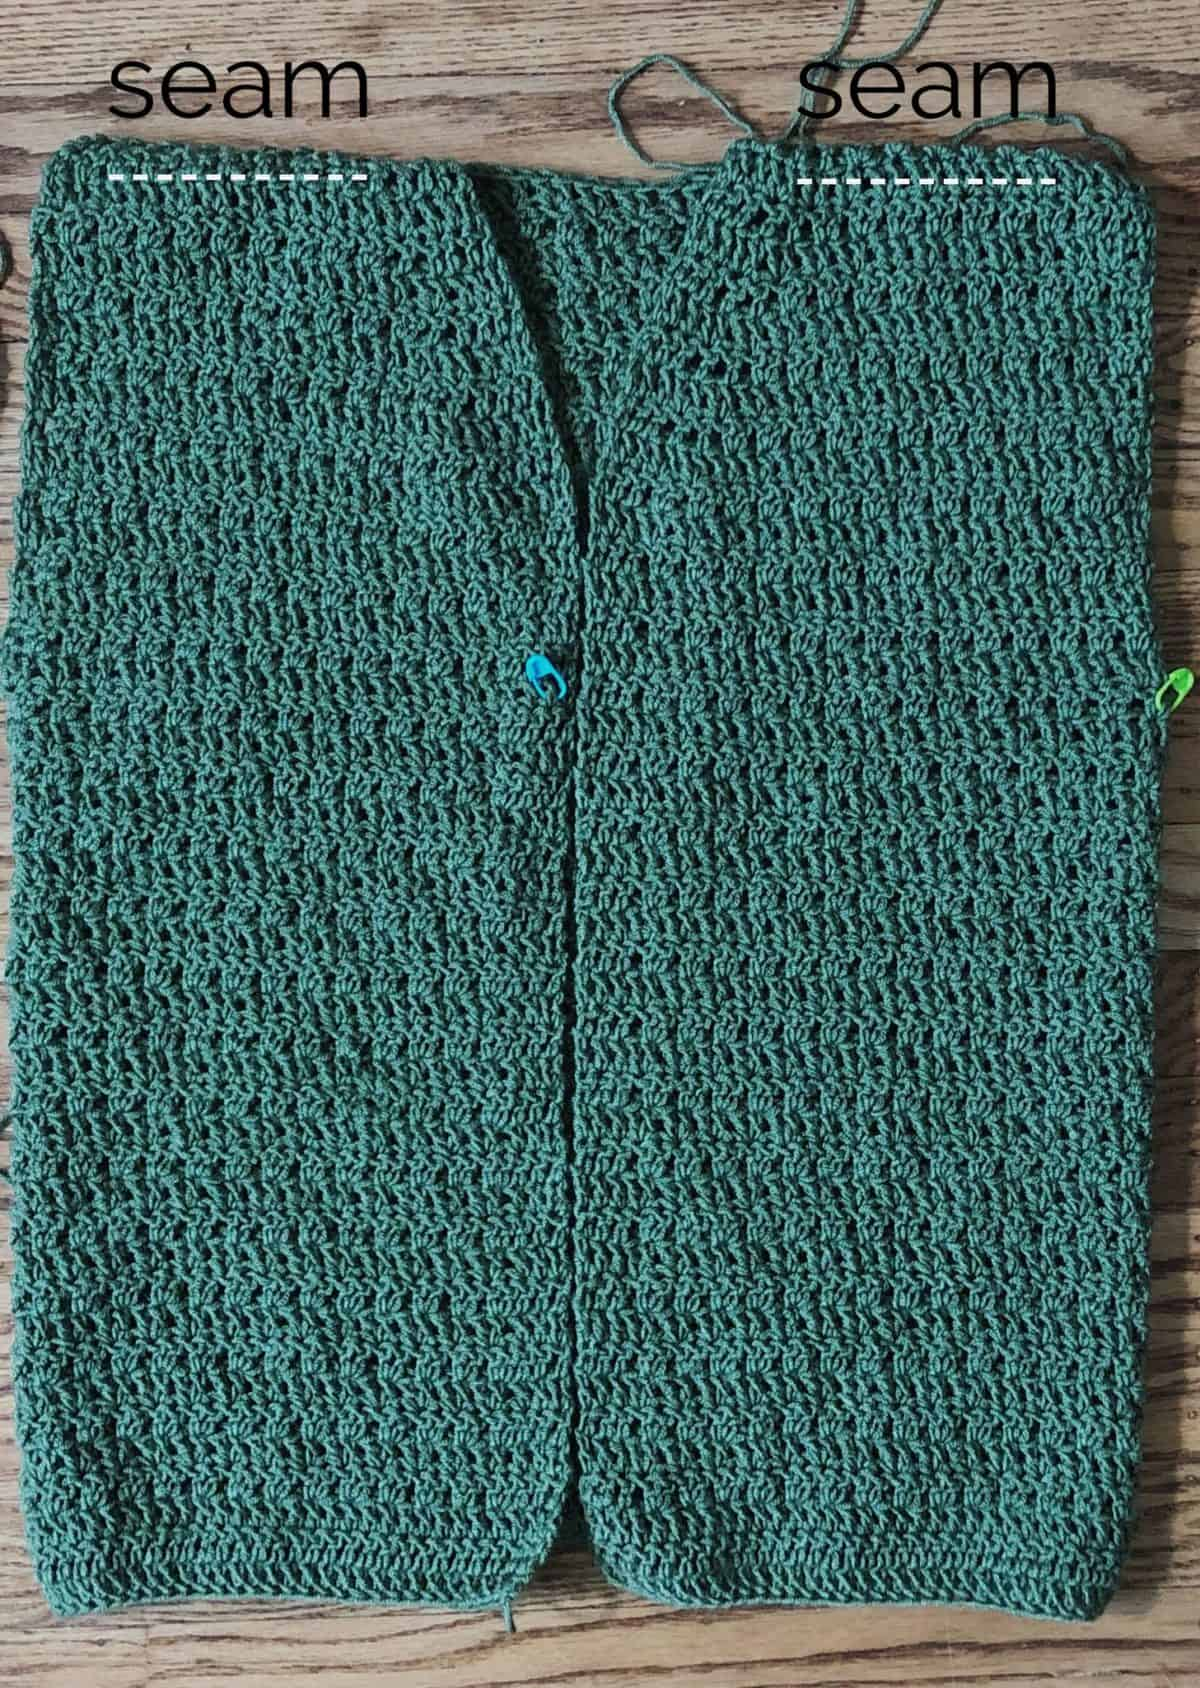 picture of green crochet cardigan with seam labels on shoulders